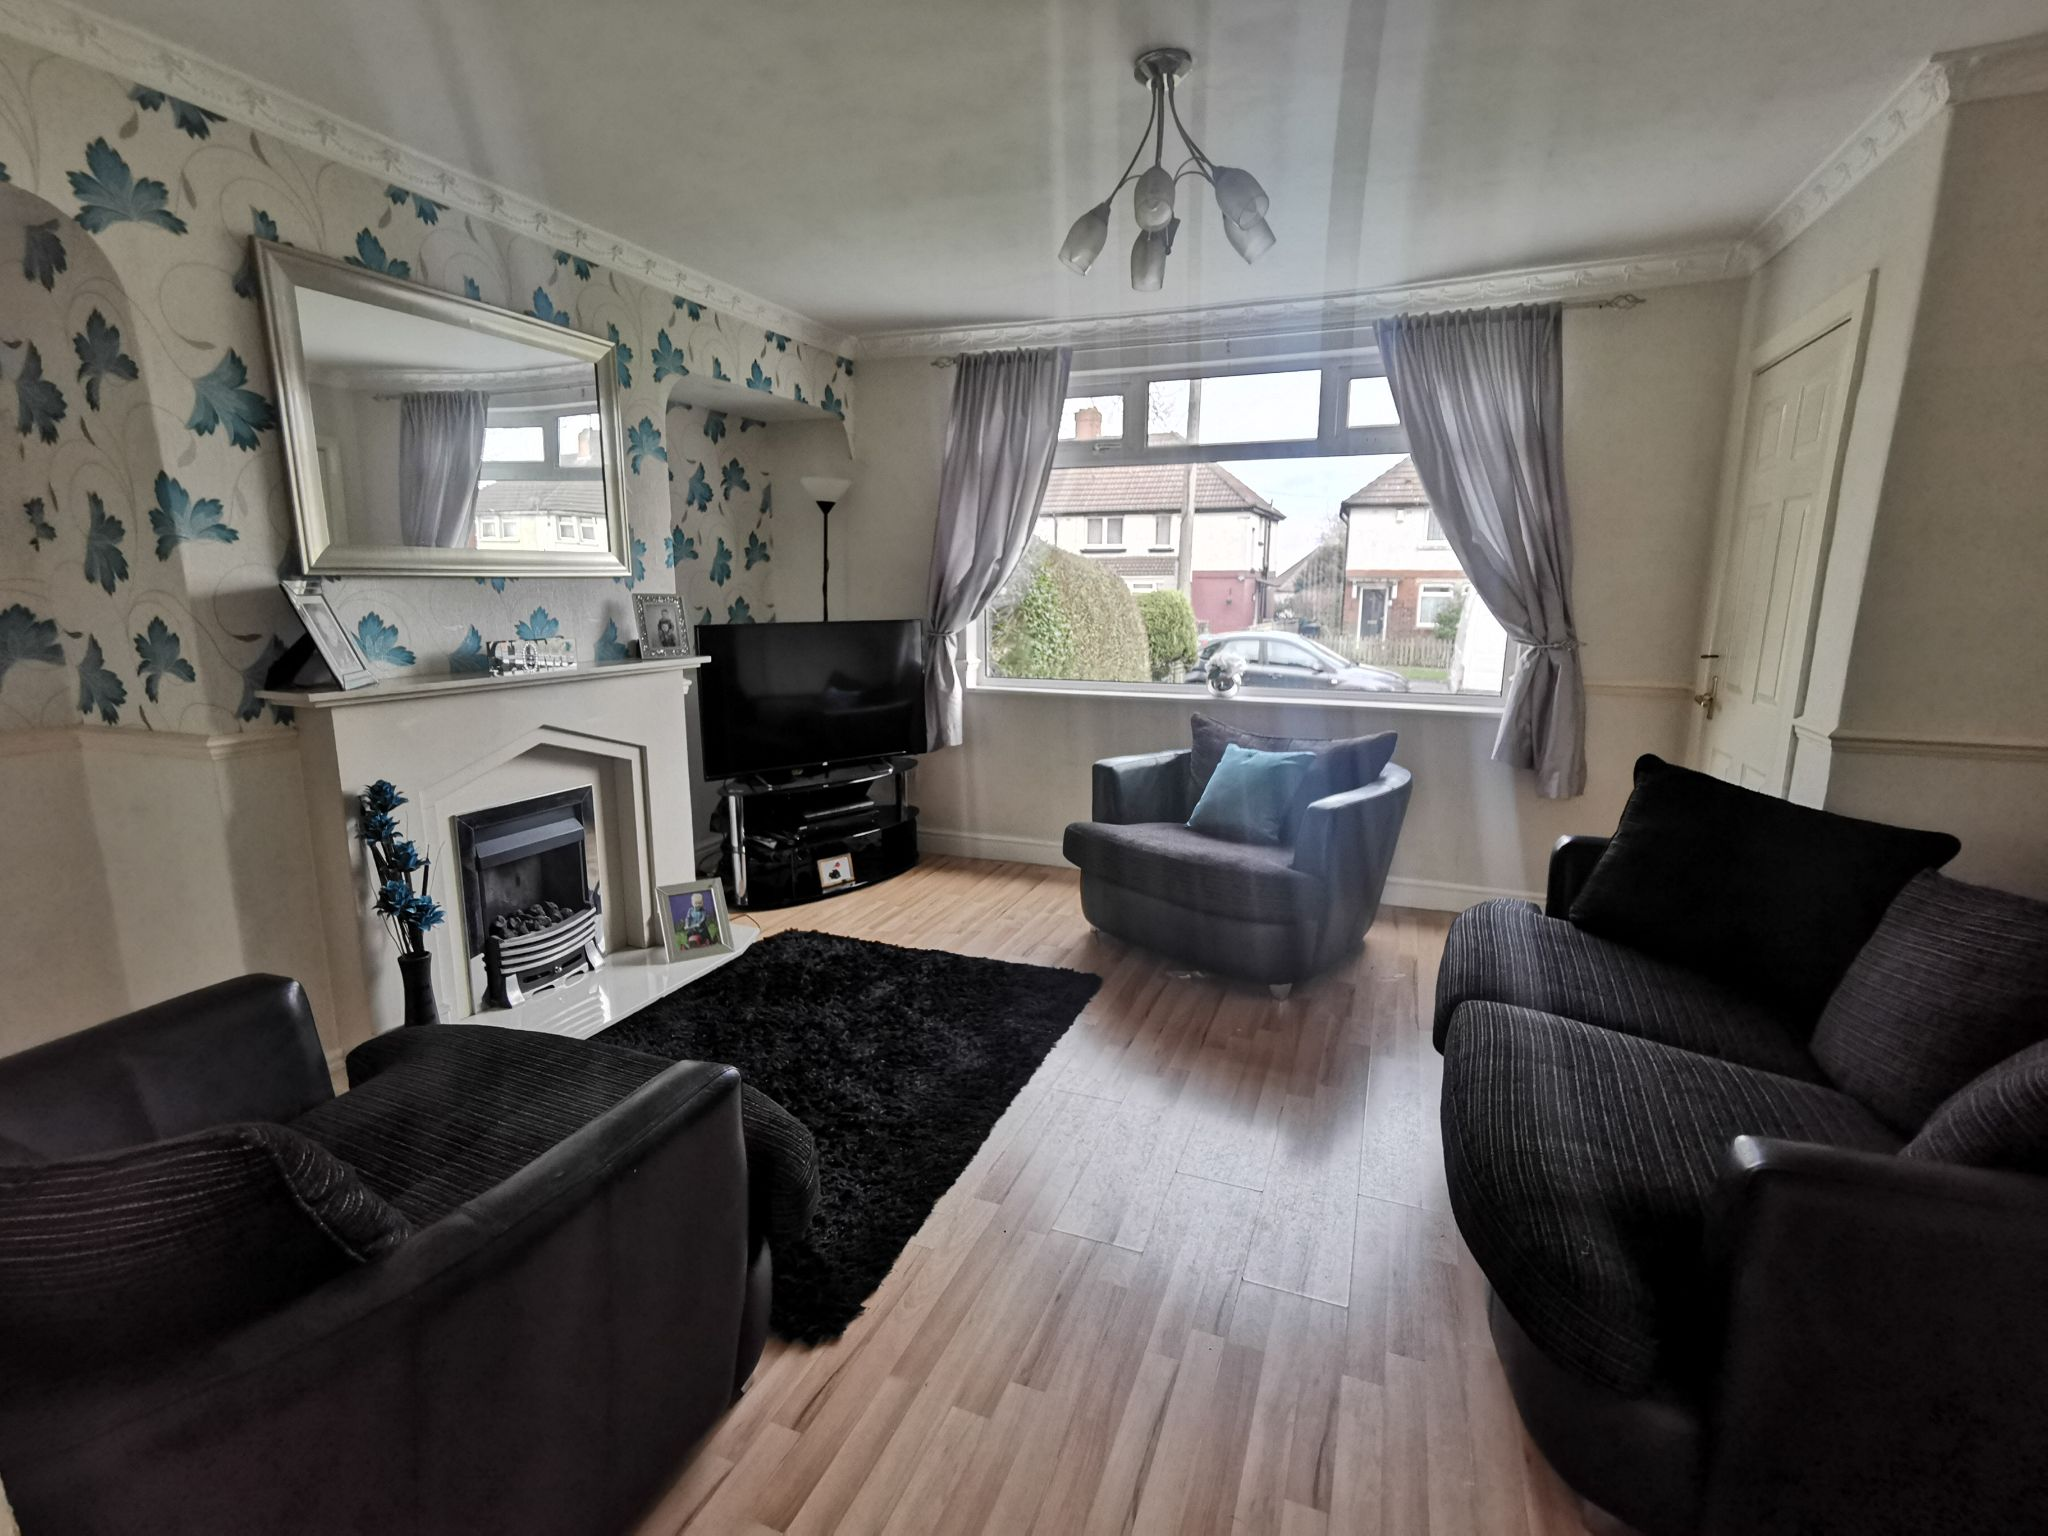 3 bedroom semi-detached house in Bradford - Property photograph.